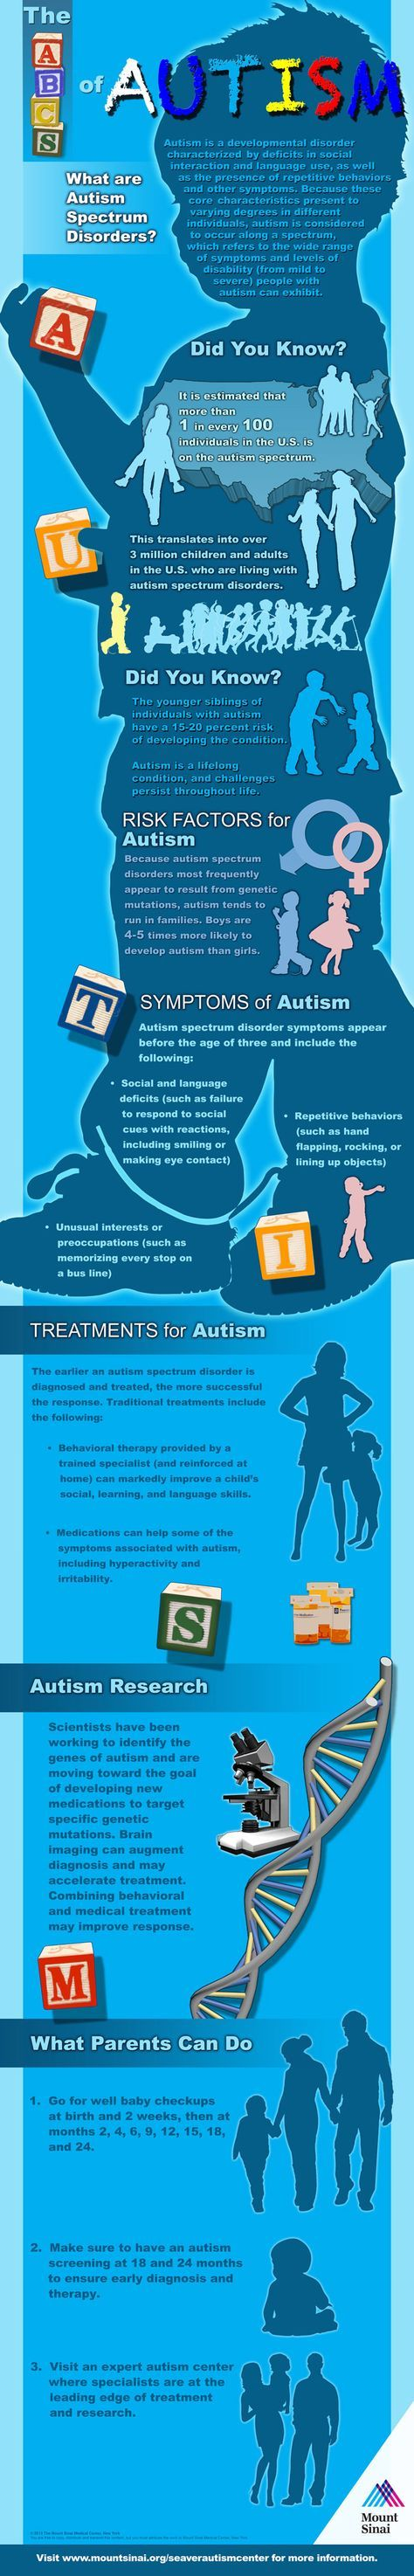 Study Ties Antidepressant Use in Pregnancy to Autism Risk ...